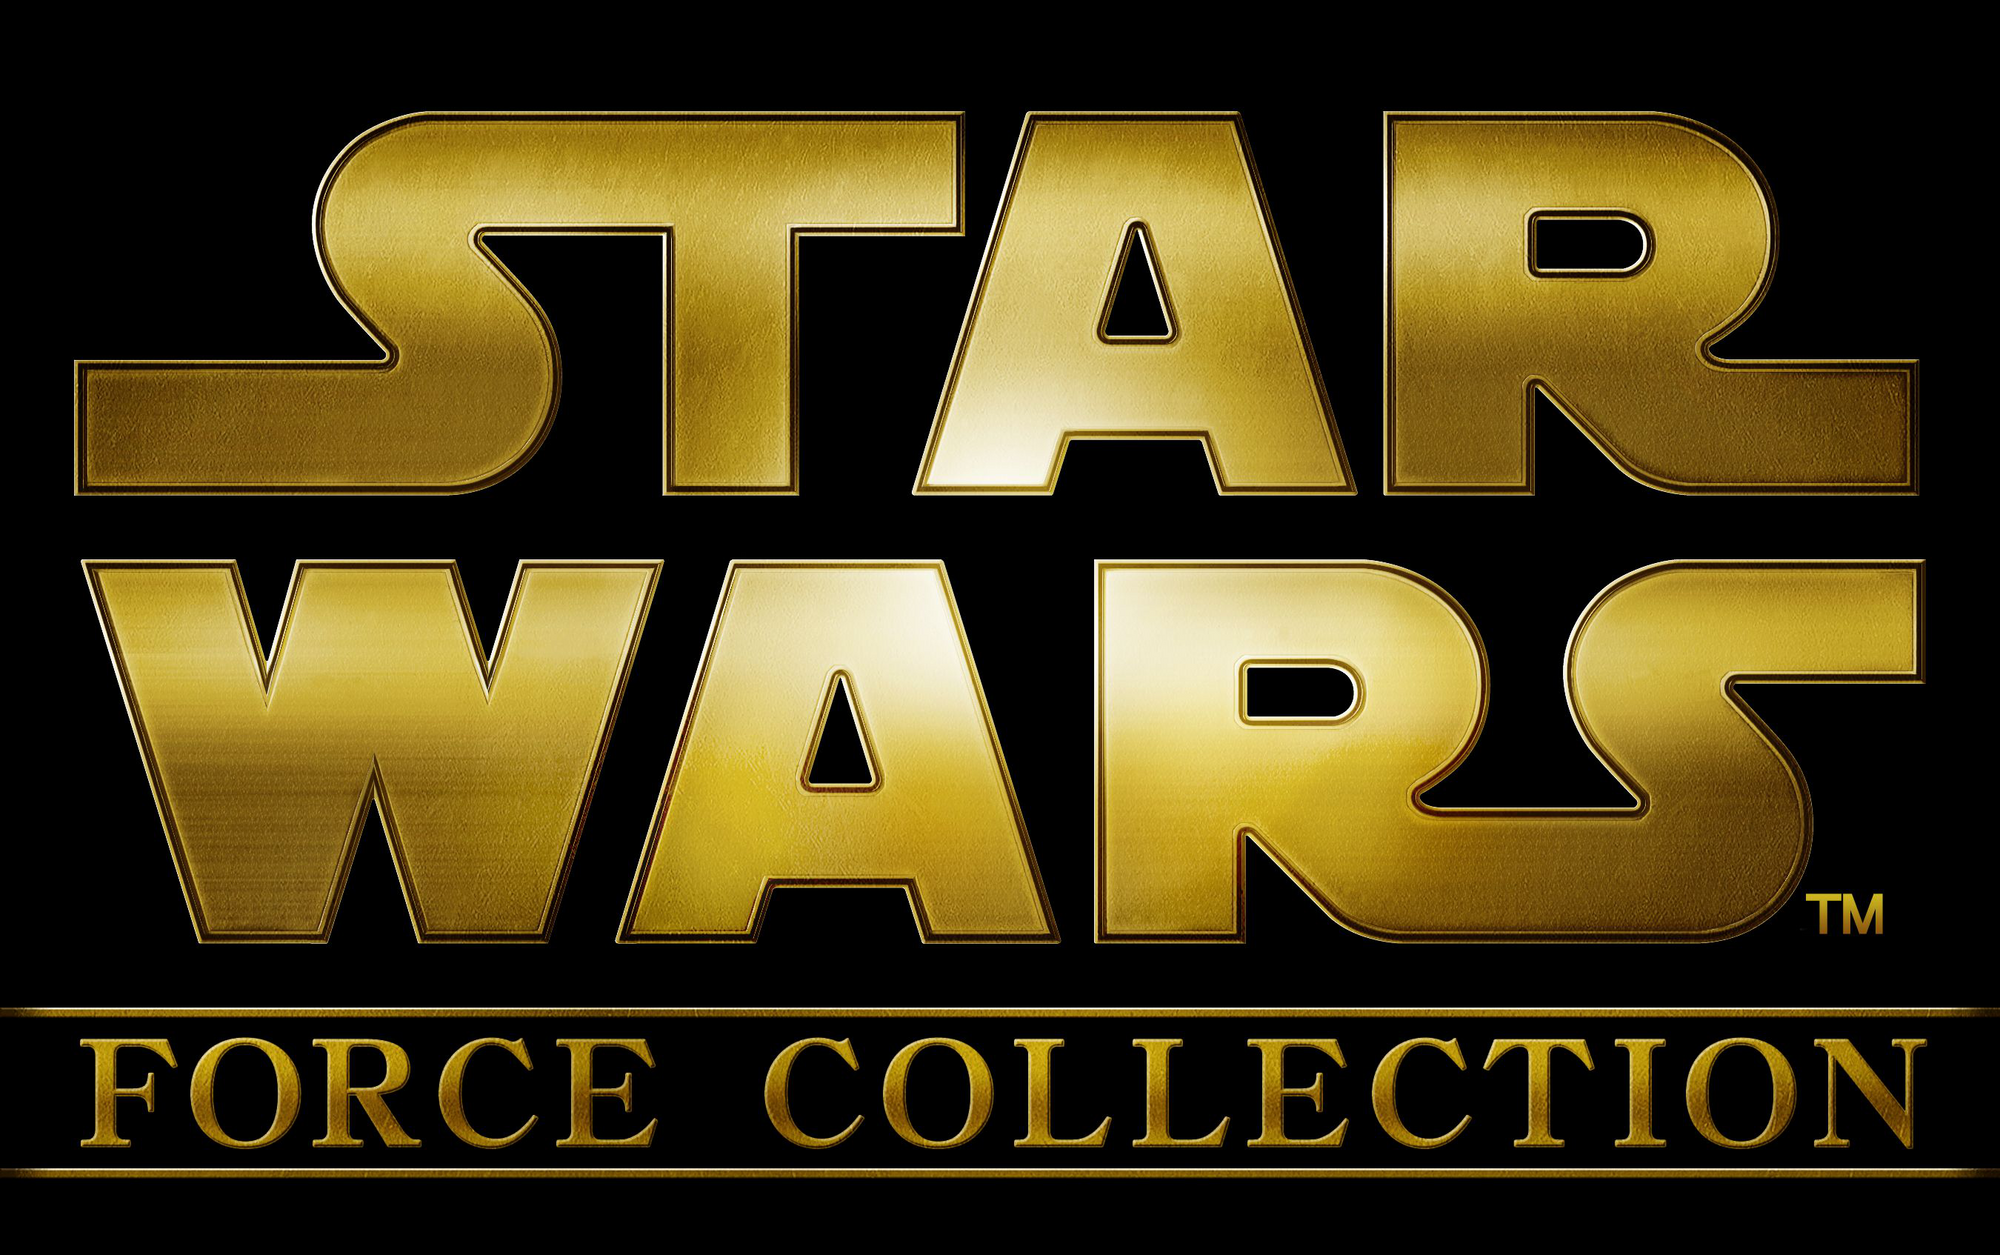 Star wars force collection wookieepedia fandom powered by wikia nvjuhfo Images